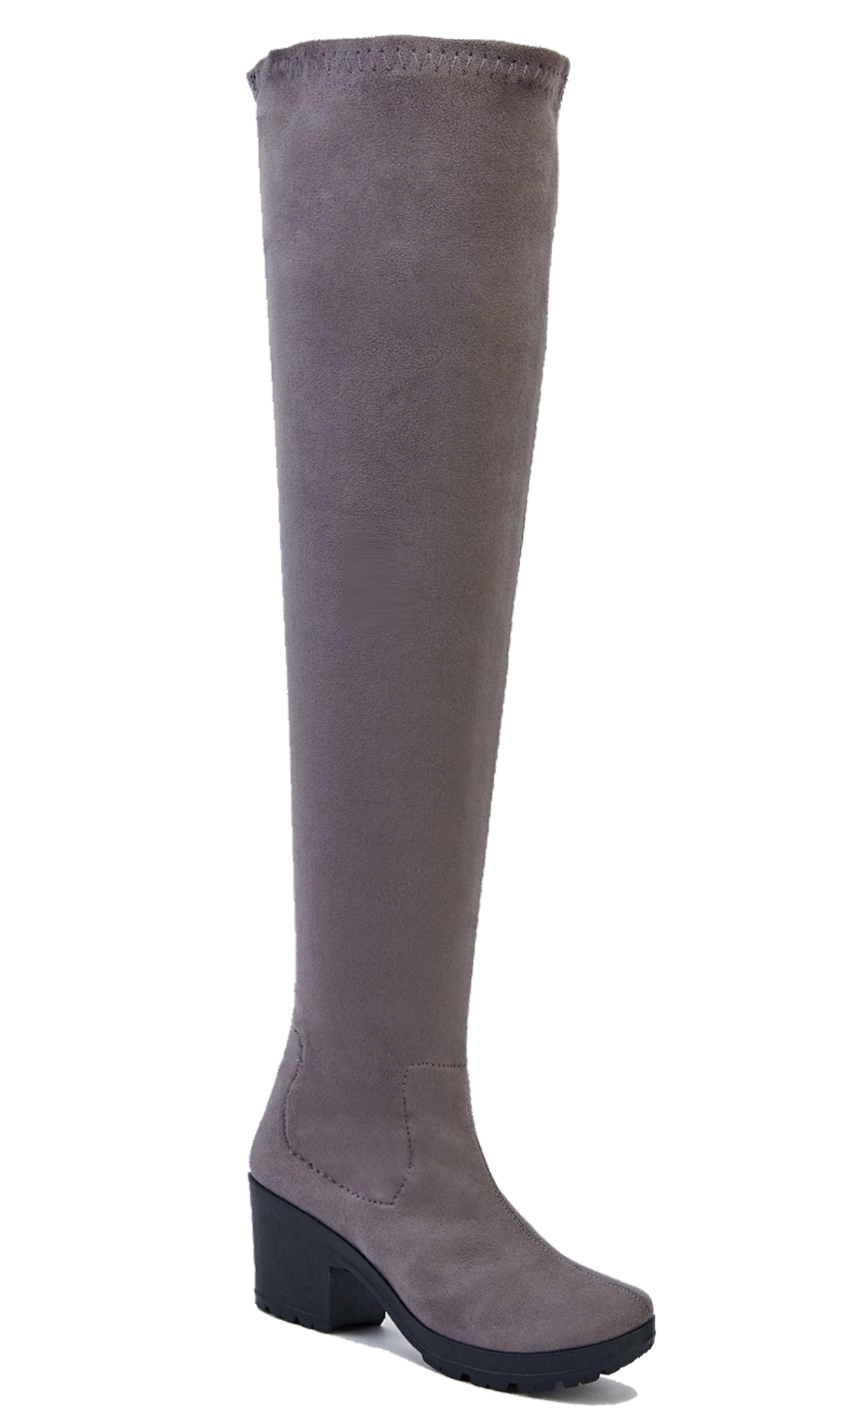 LADIES-GREY-STRETCH-OVER-THE-KNEE-HIGH-ZIP-UP-PLATFORM-BOOTS-SHOES-SIZES-3-9 thumbnail 6